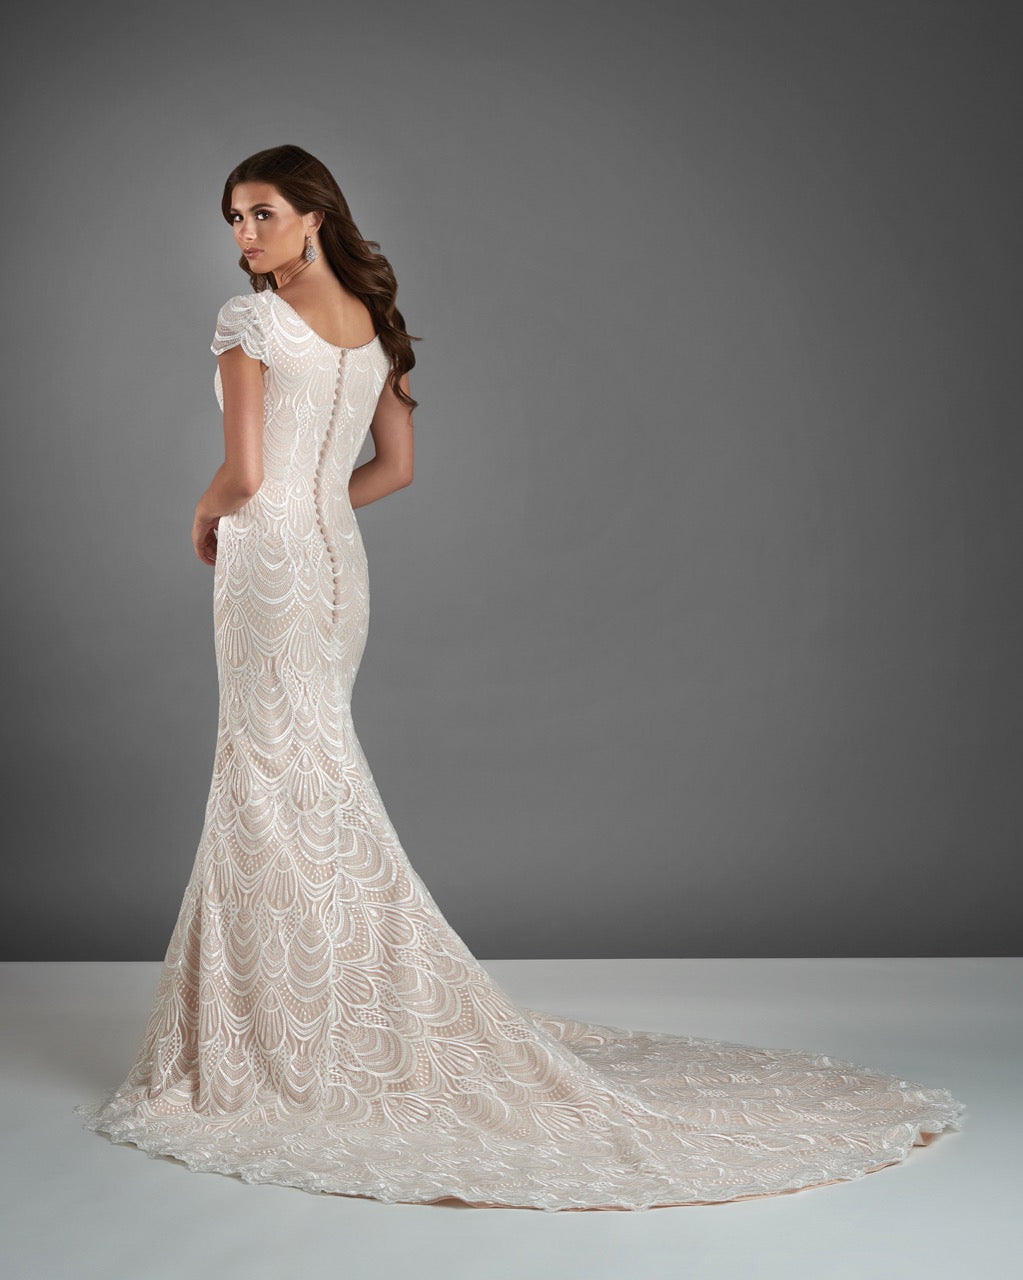 Bonny Bridal 2912 Modest Wedding Dress Bliss Collection back view from A Closet Full of Dresses